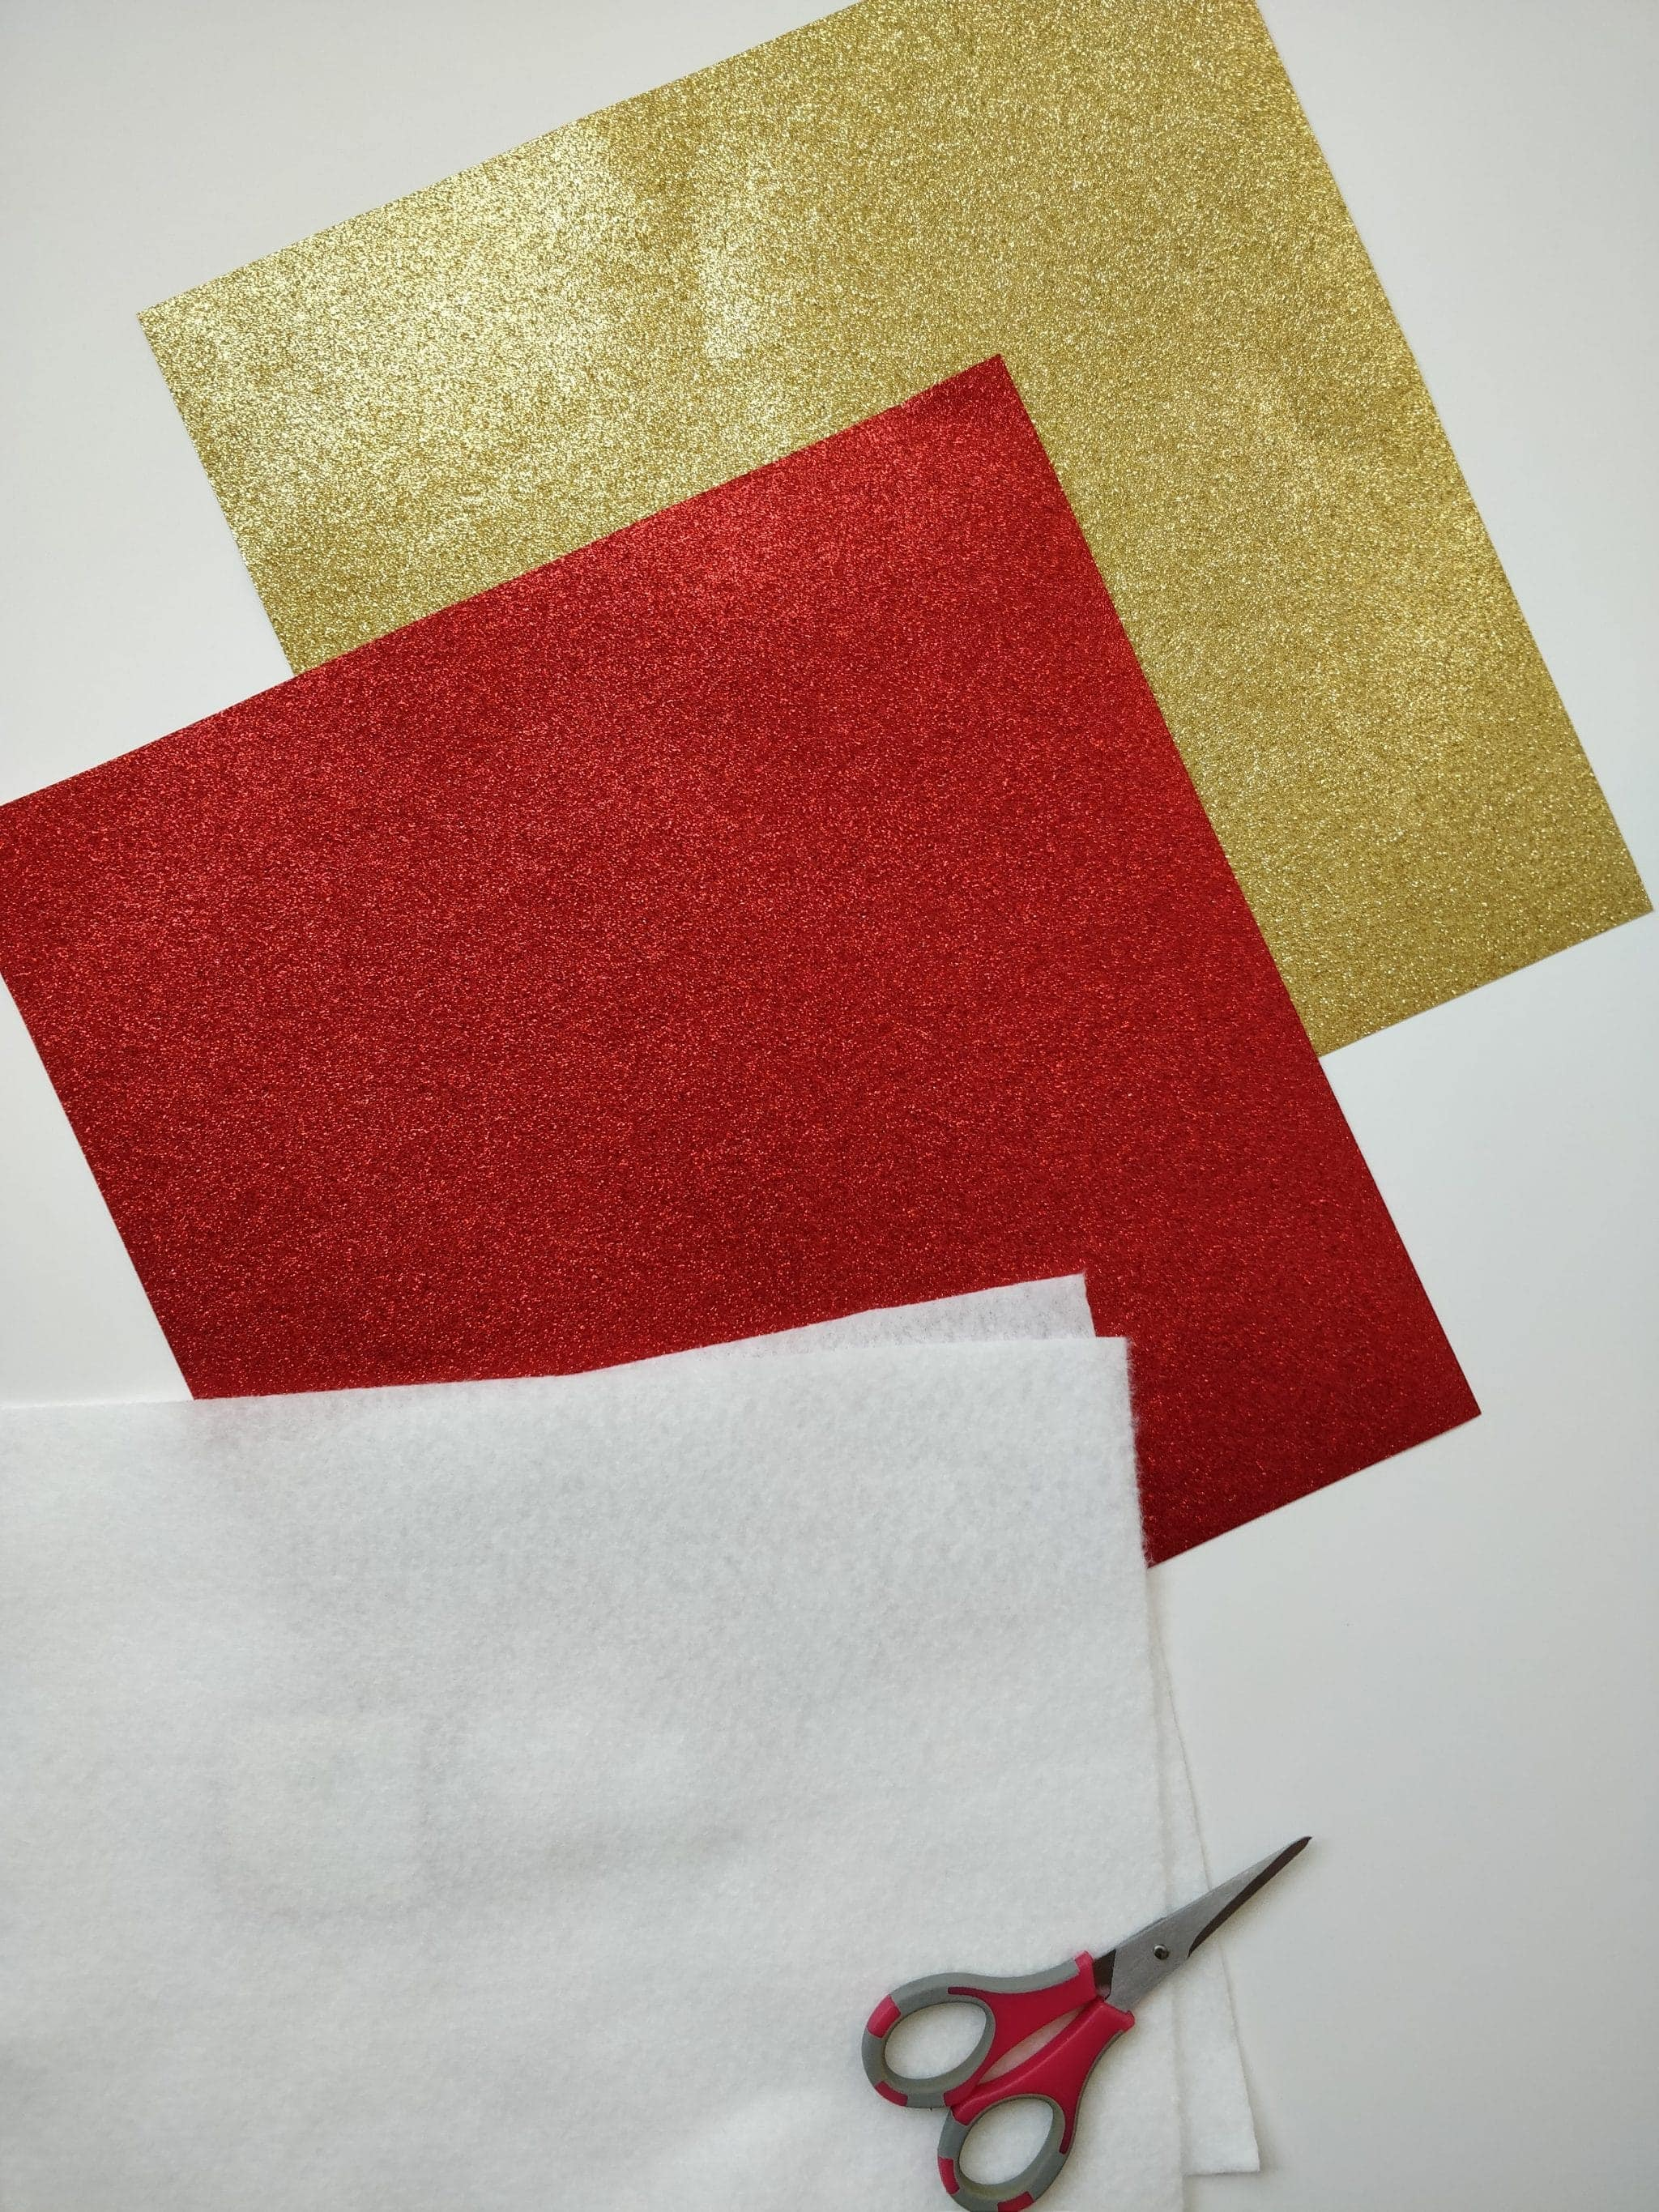 Red and gold glitter paper with scissors and backing material